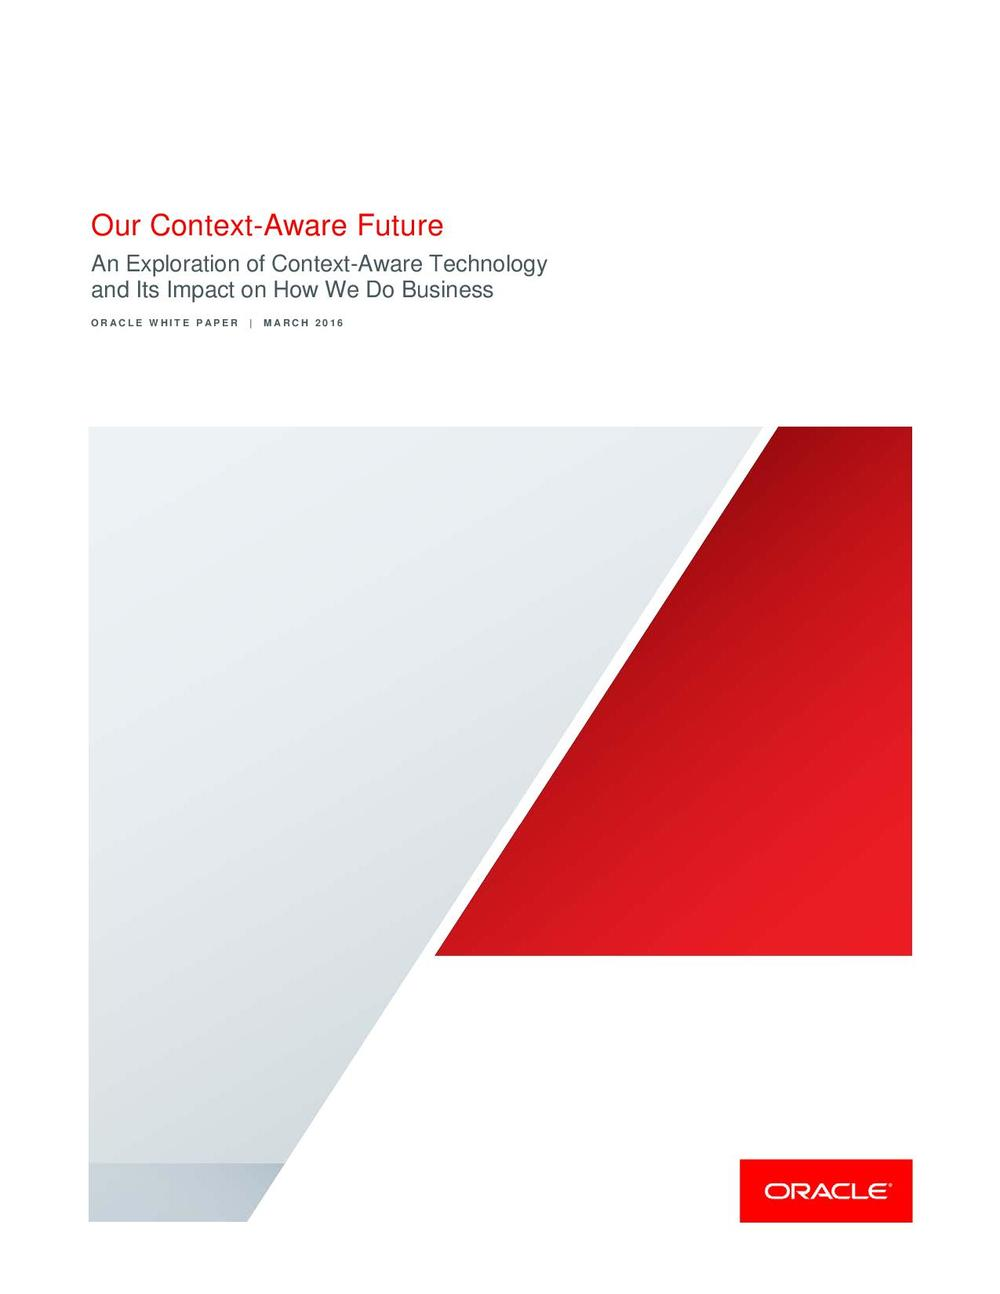 Oracle: Our Context-Aware Future